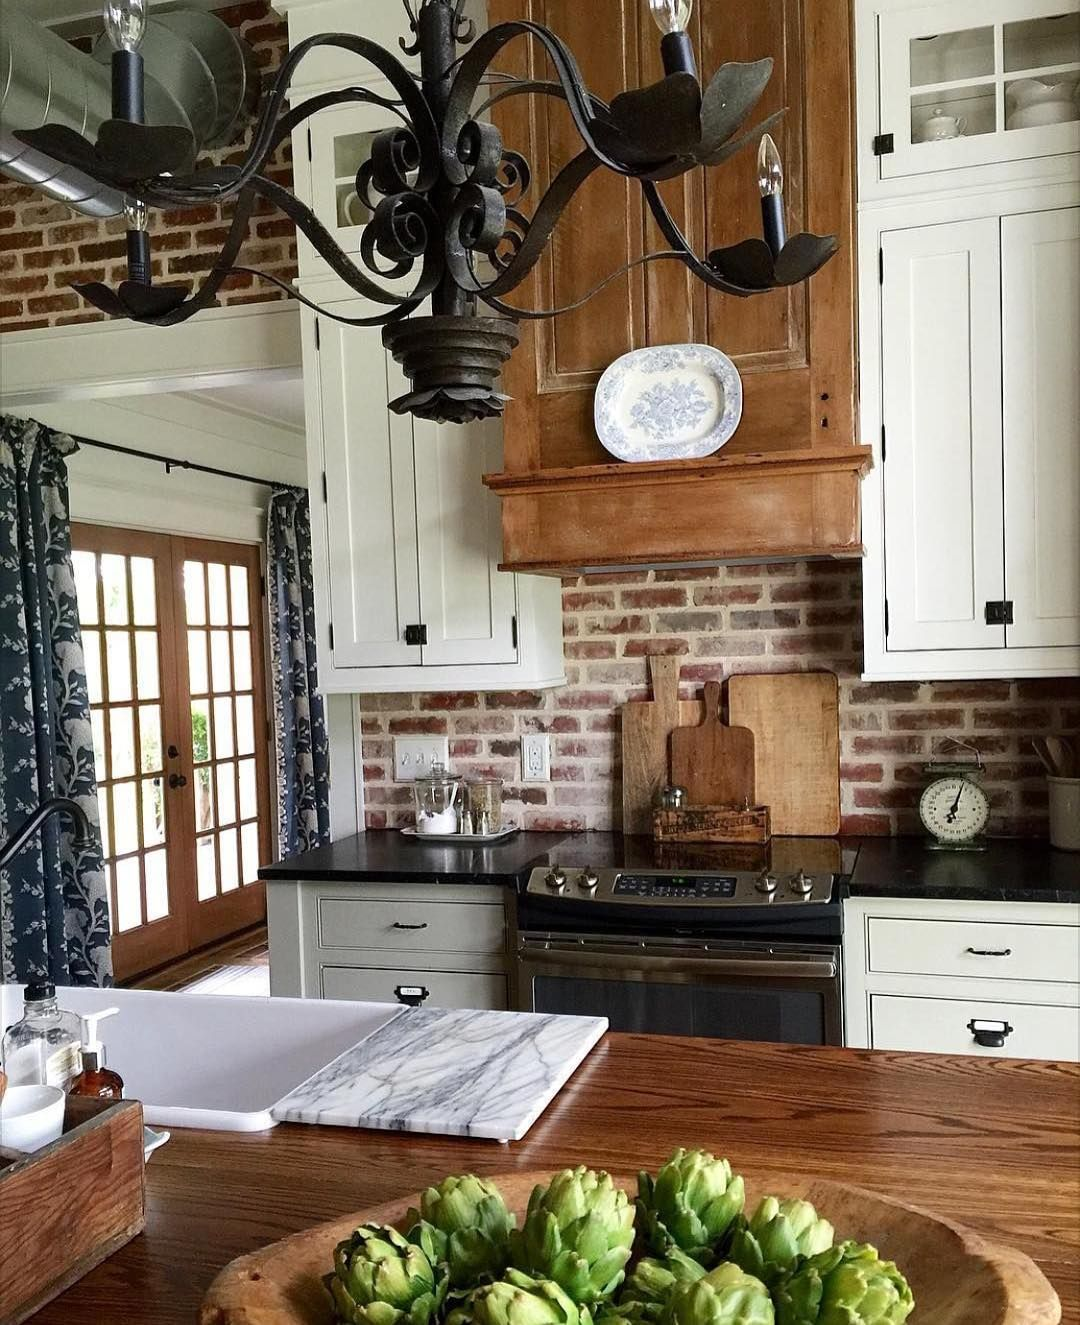 Knotty pine kitchen ceiling my vintage kitchen ideas - Create An Elegant Statement With A White Brick Wall Design Ideas Kitchens